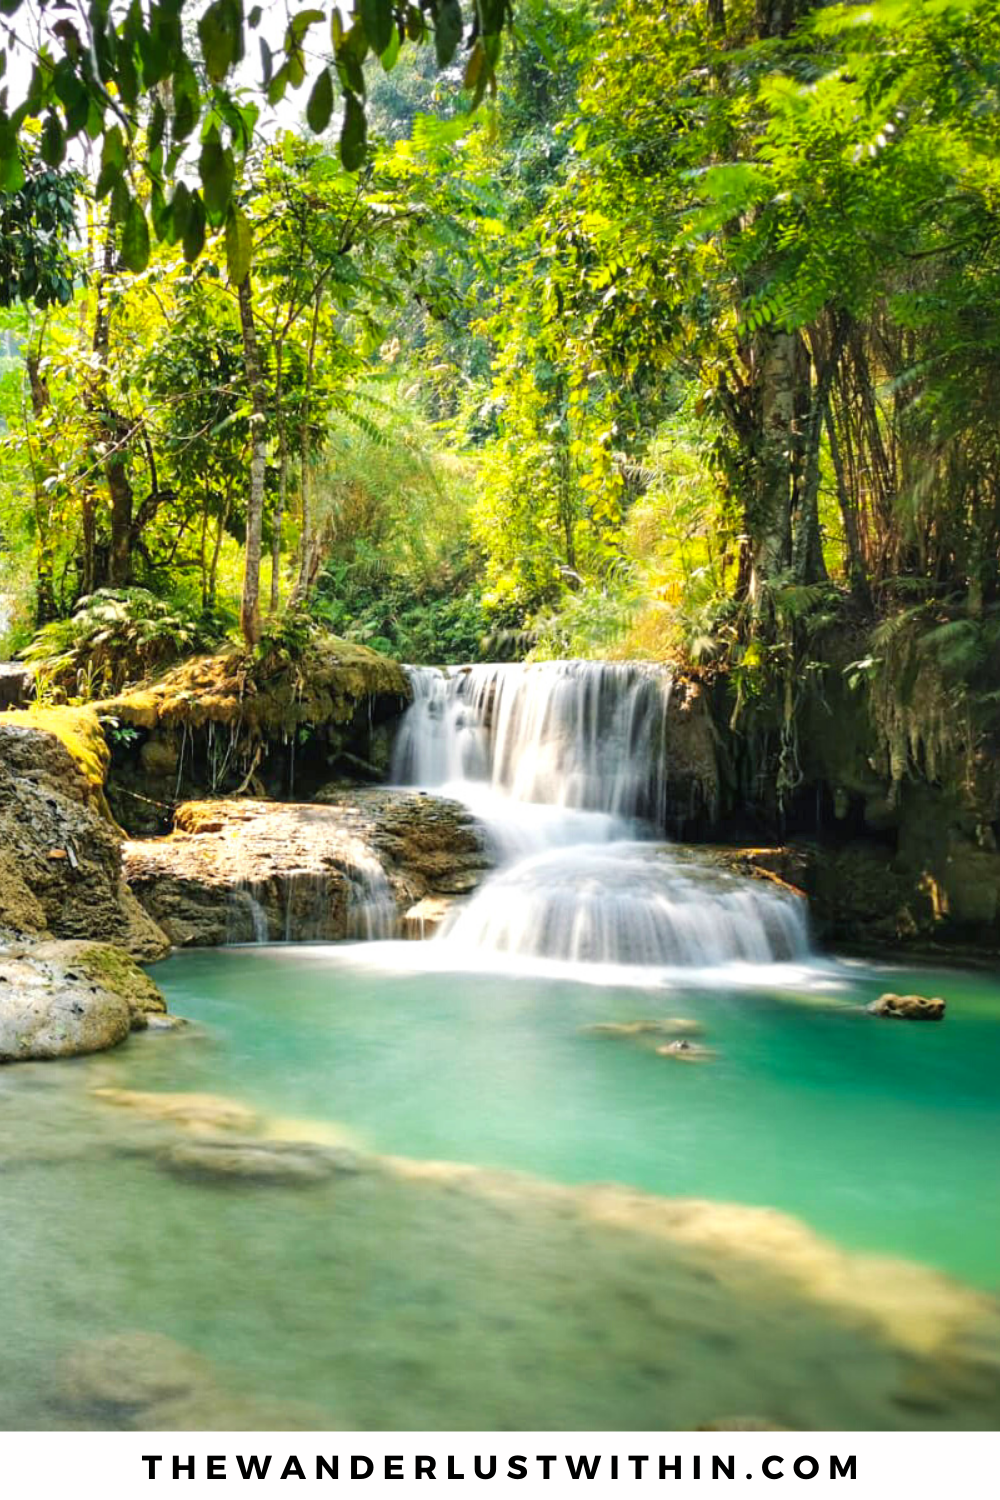 80 Best Waterfall Quotes For 2020 The Wanderlust Within In 2020 Waterfall Quotes Nature Captions For Instagram Instagram Captions